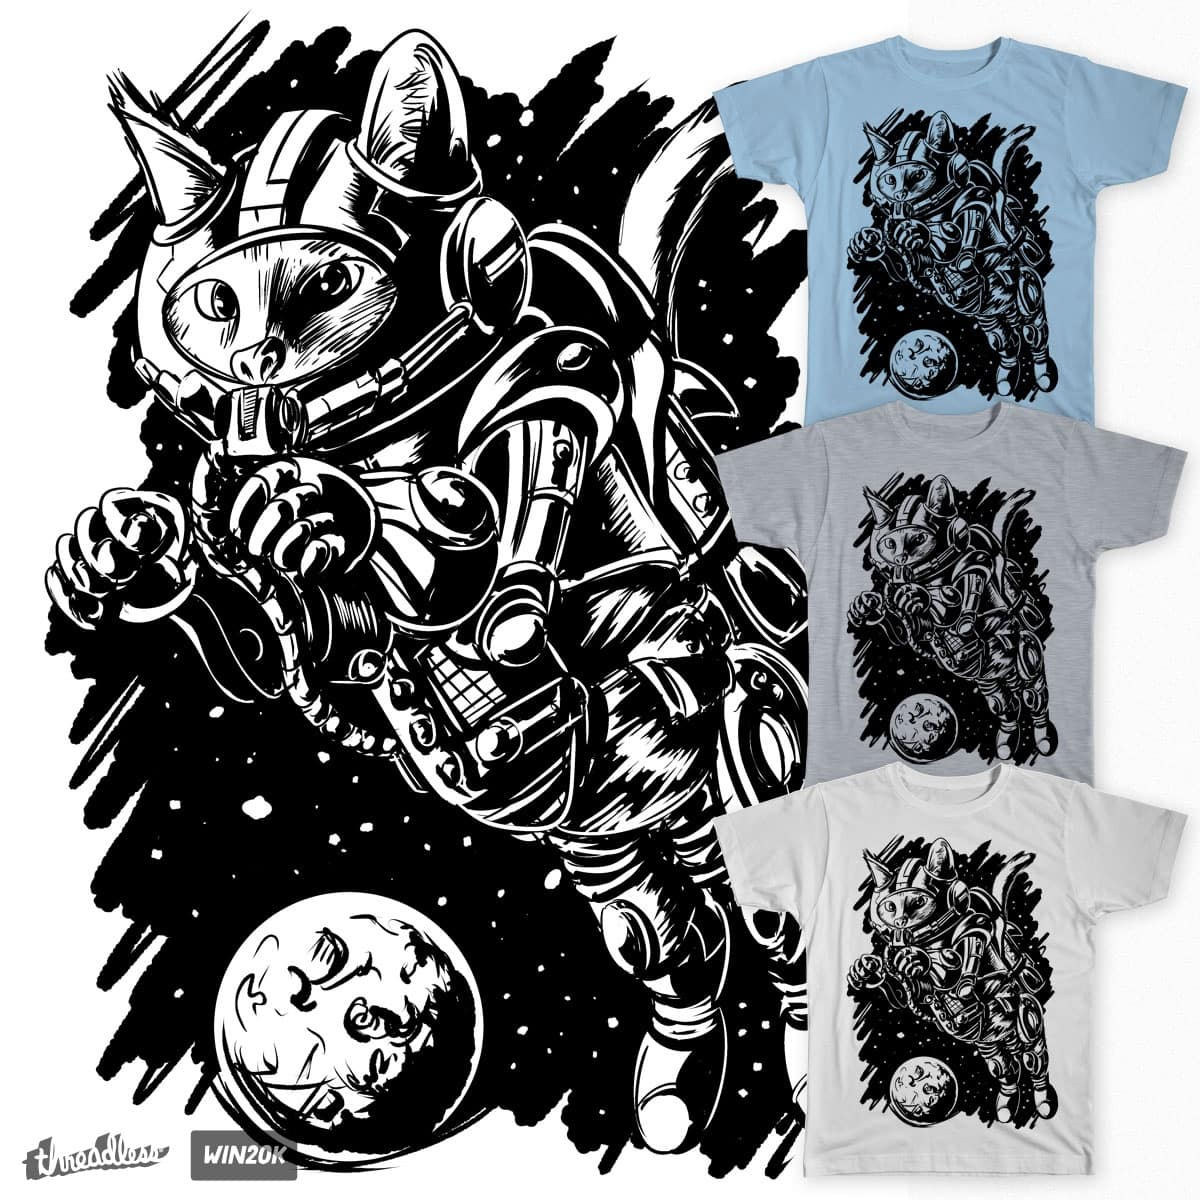 Cosmo-Cat by ROCOM on Threadless